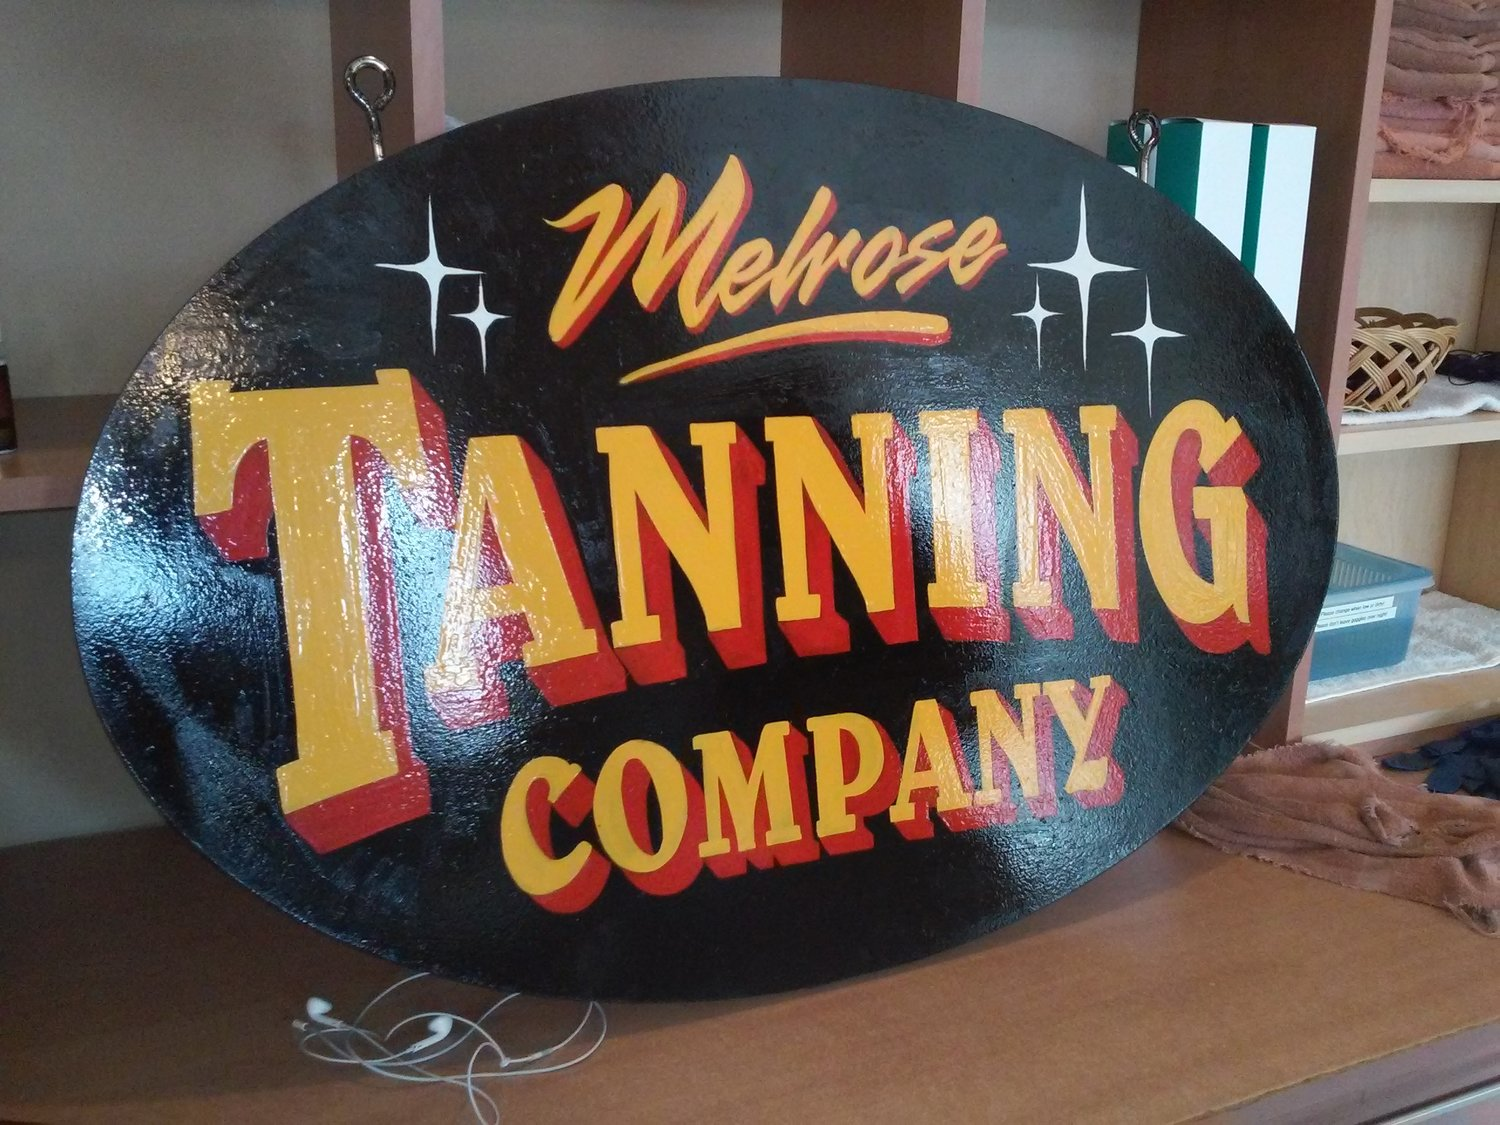 Melrose Tanning Company